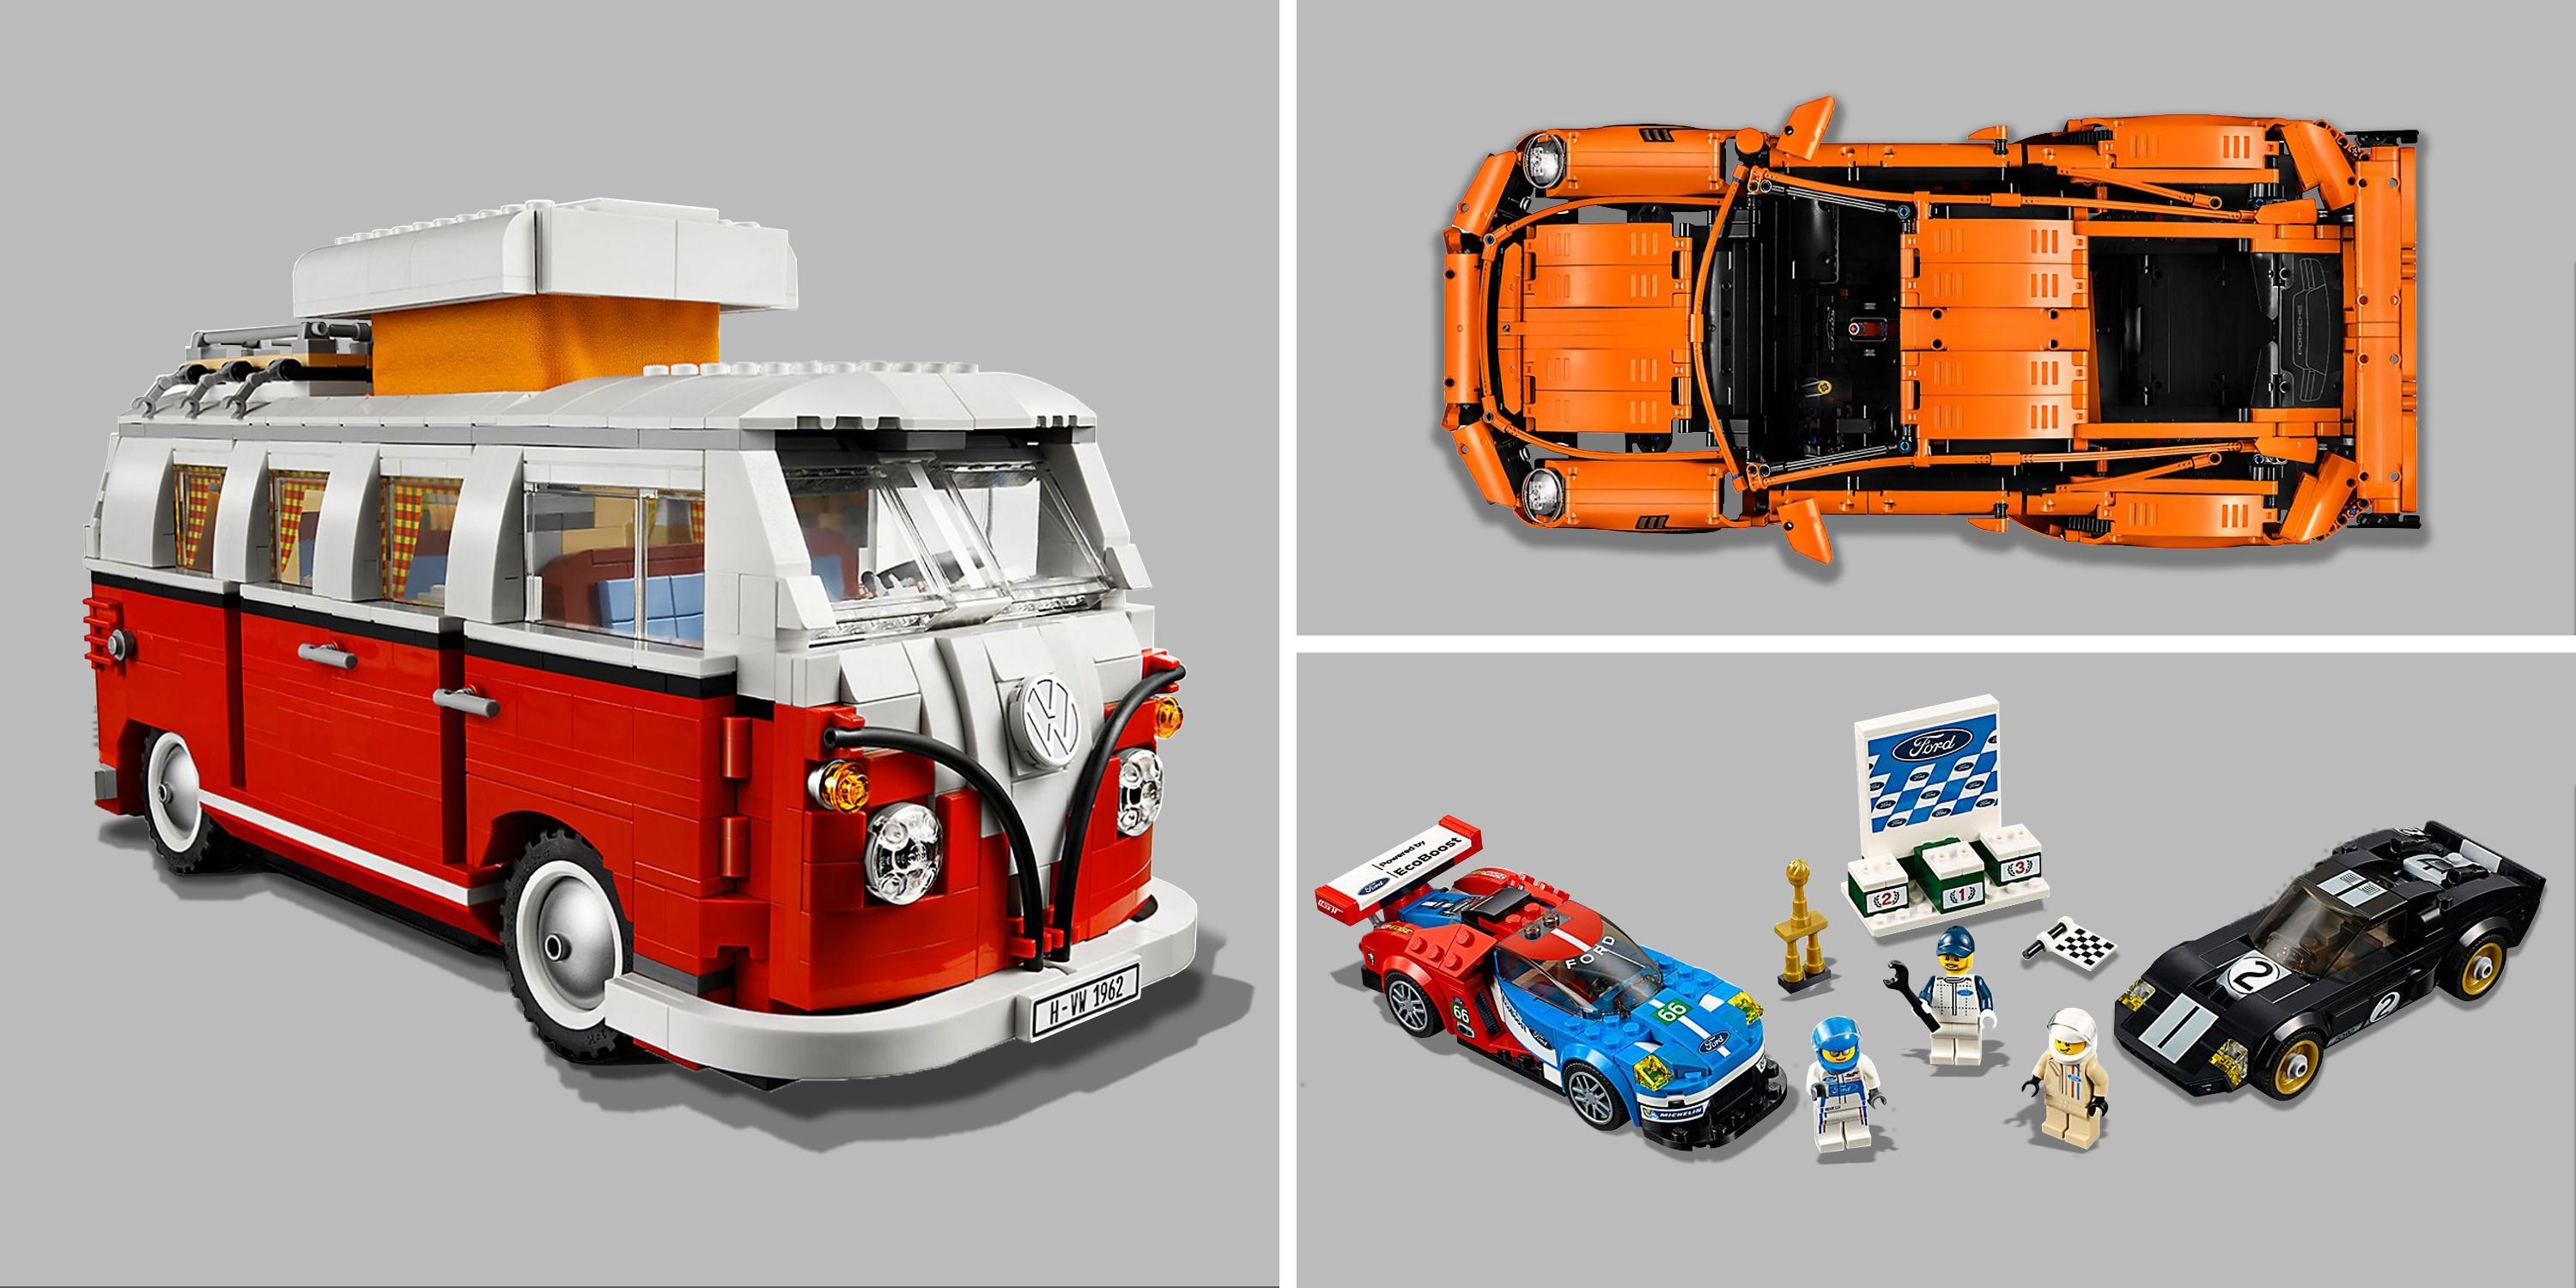 The 20 Coolest Cars You Can Buy in Lego Form